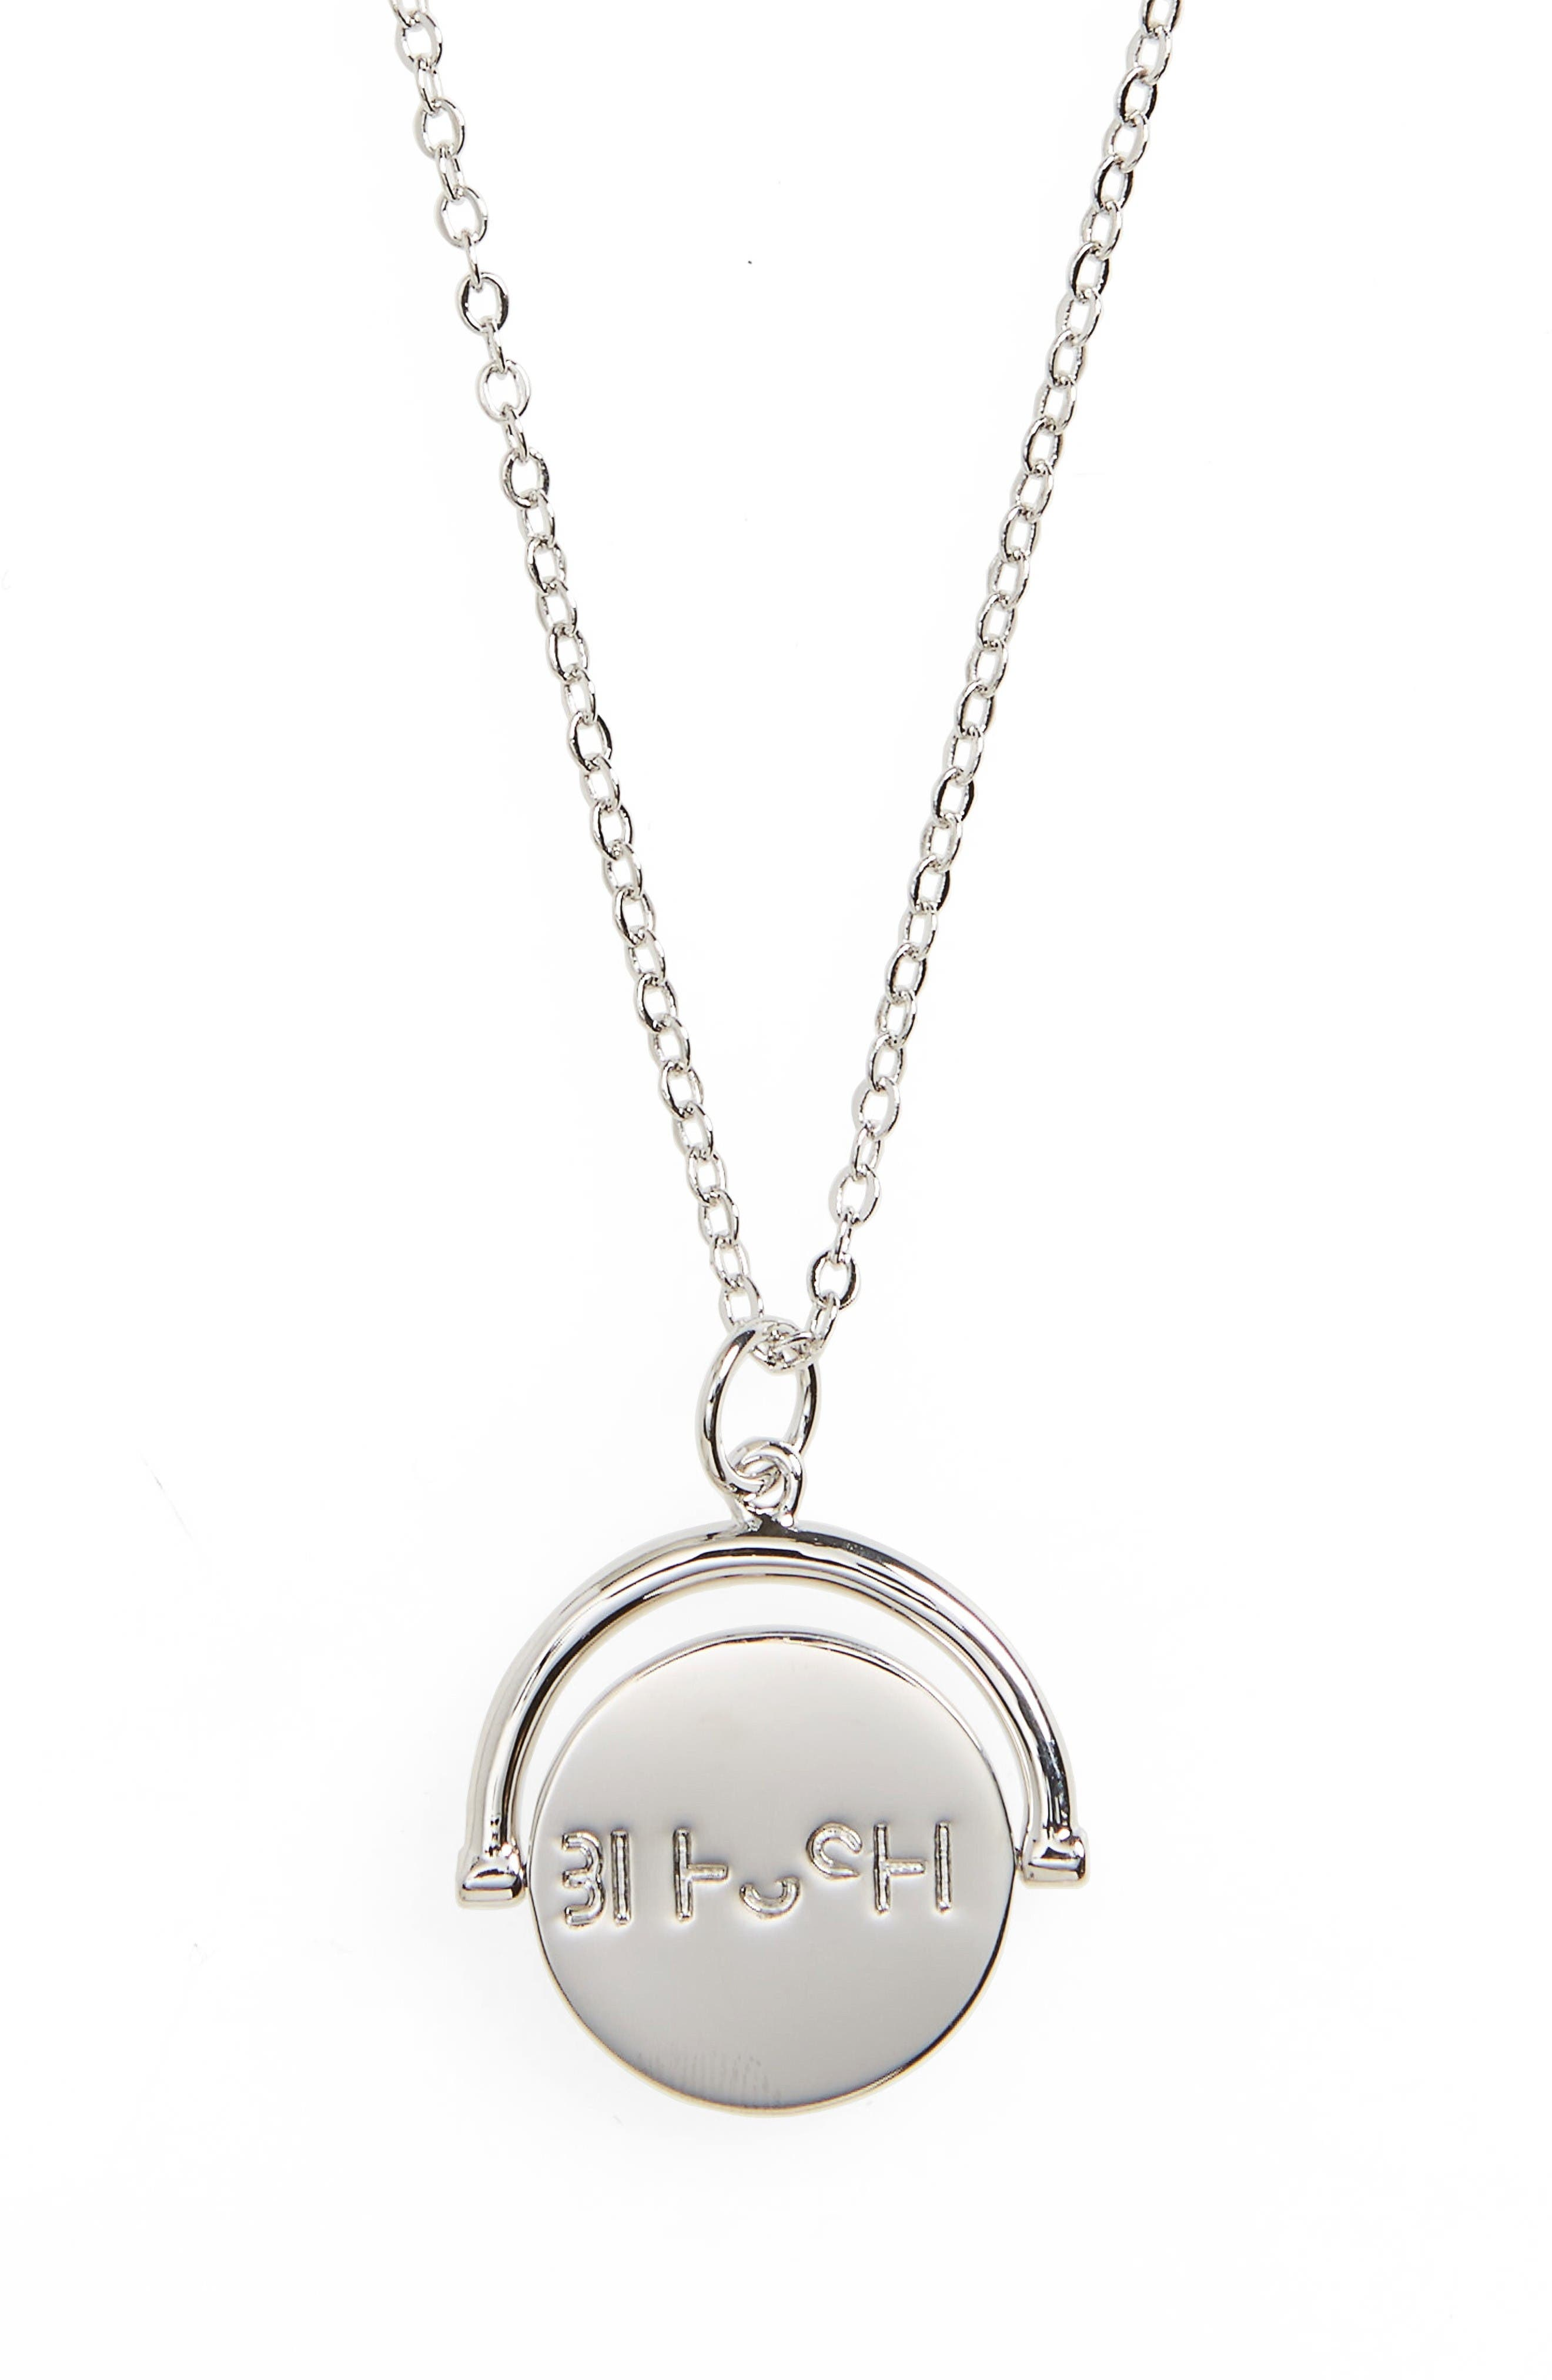 Main Image - Lulu DK Blessed Love Code Charm Necklace